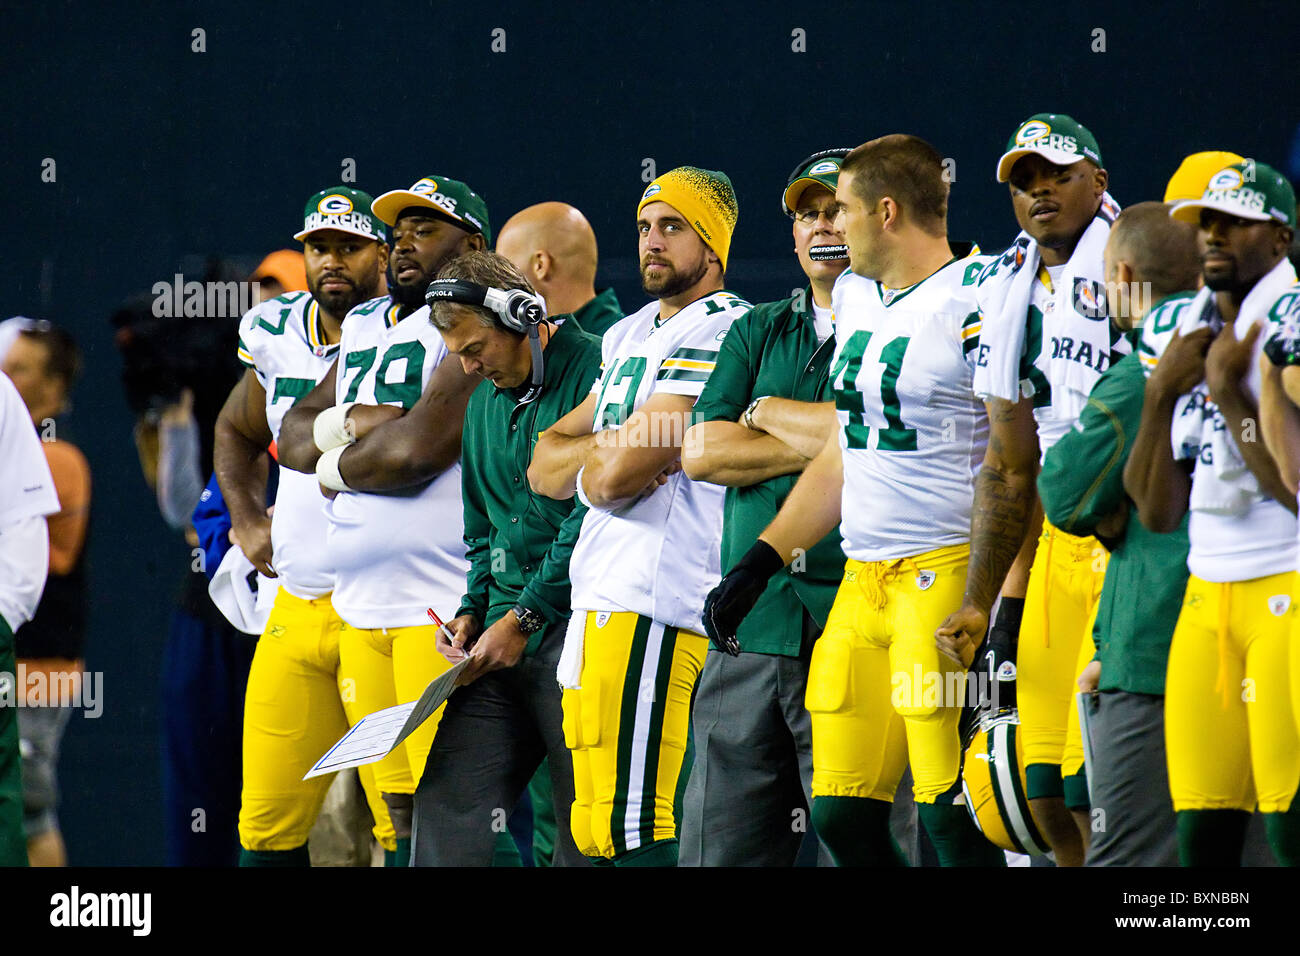 NFL Team Green Bay Packers standing on the sidelines during a football game - Stock Image